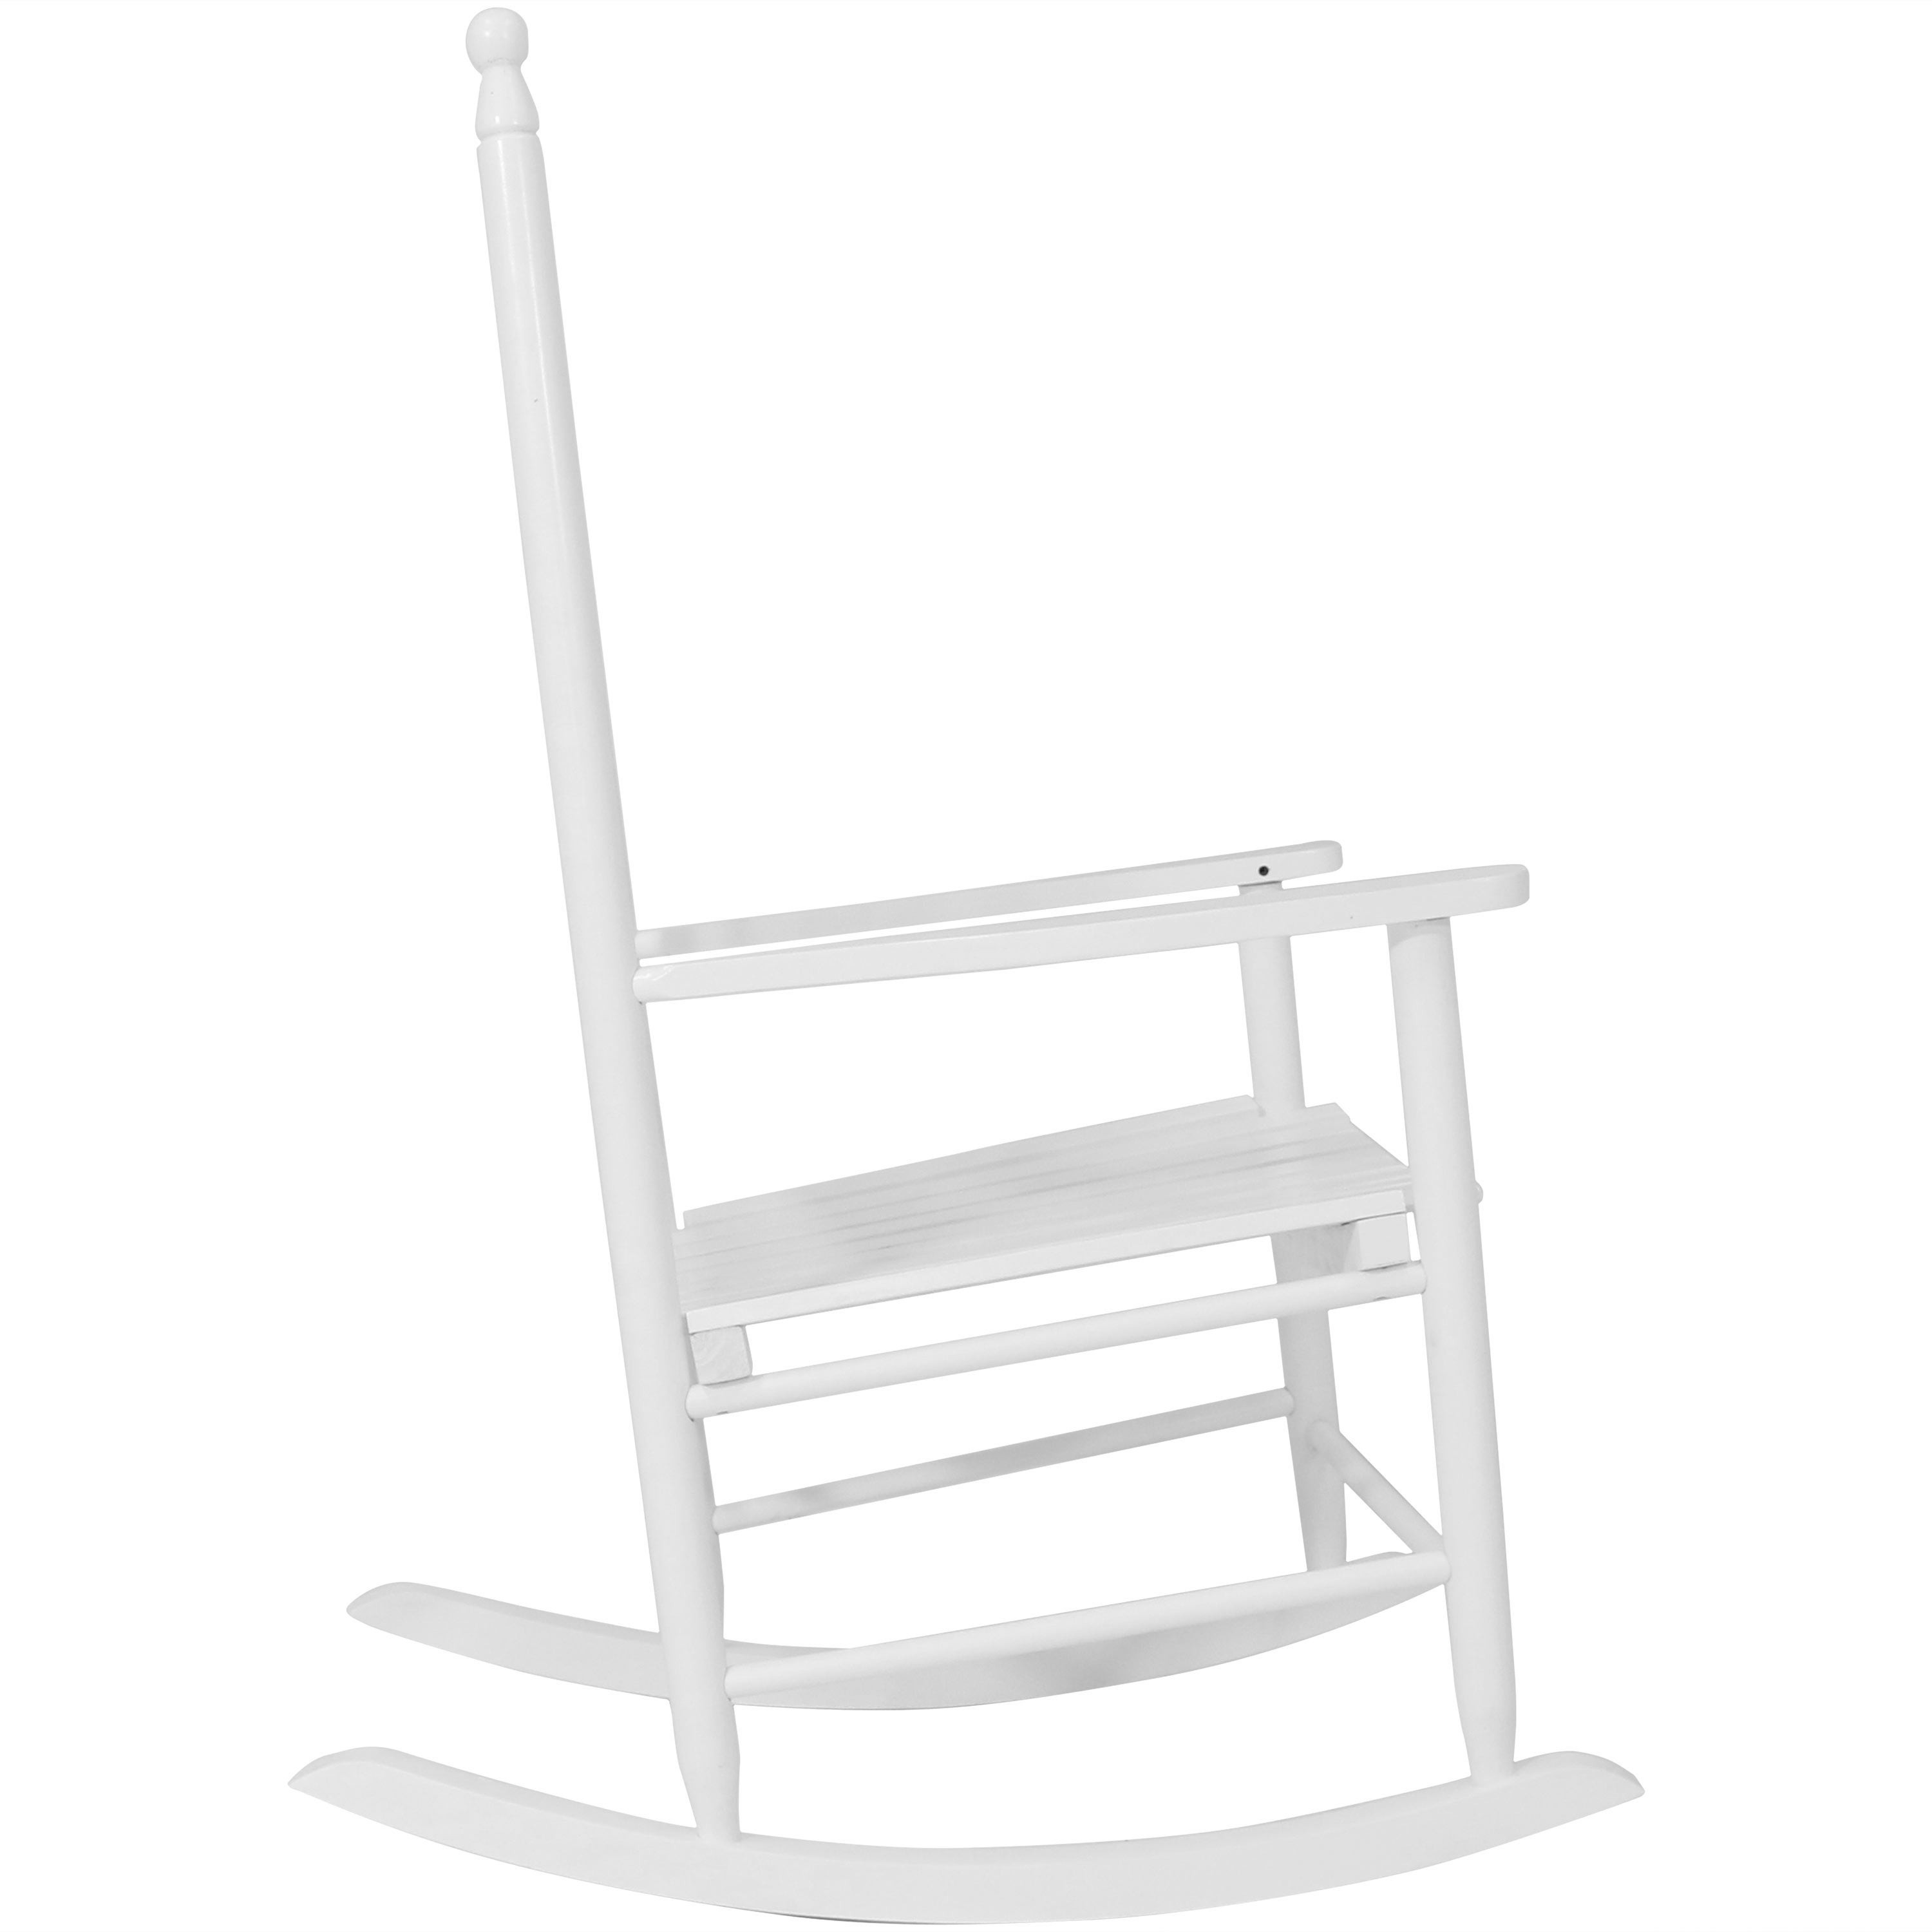 Sunnydaze Wooden Traditional Rocking Chair With Non Toxic Paint Finish –  White Regarding Brady Traditional White Rocking Chairs (#17 of 20)